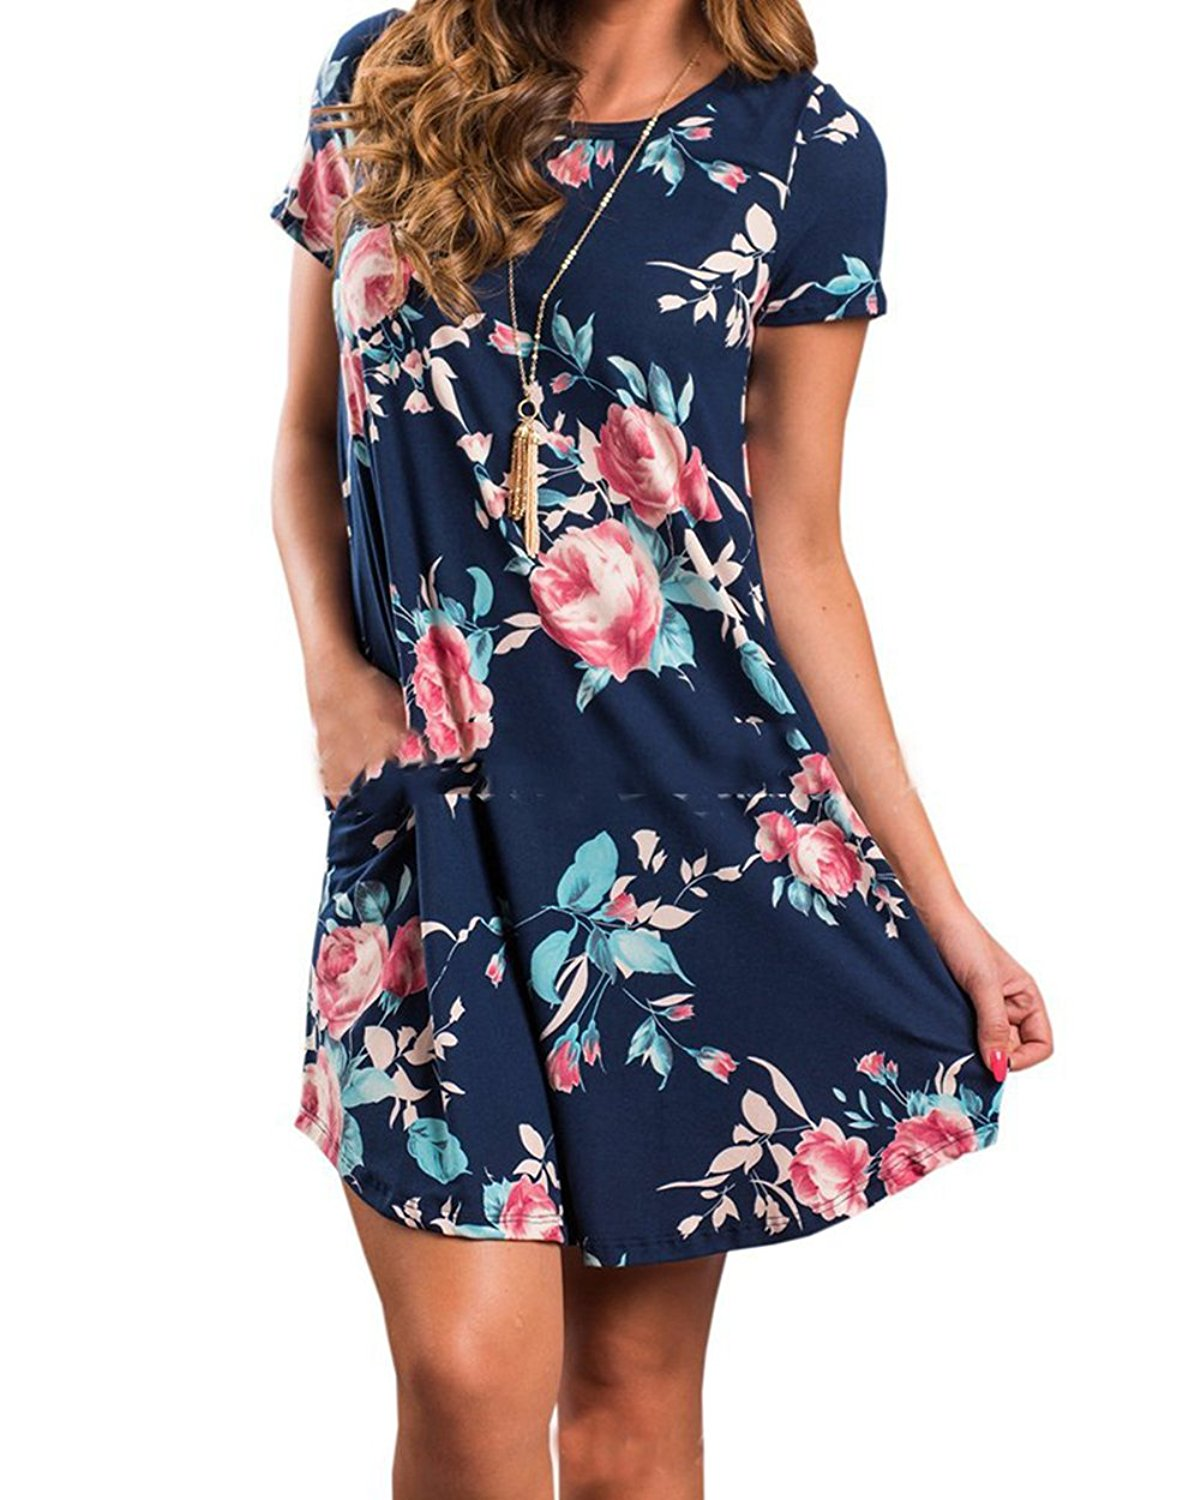 6af7fe2cfd70 Get Quotations · Women s Floral Short Sleeves Dress with Pockets Casual  Loose Top Shirt Sundress Shift Dress